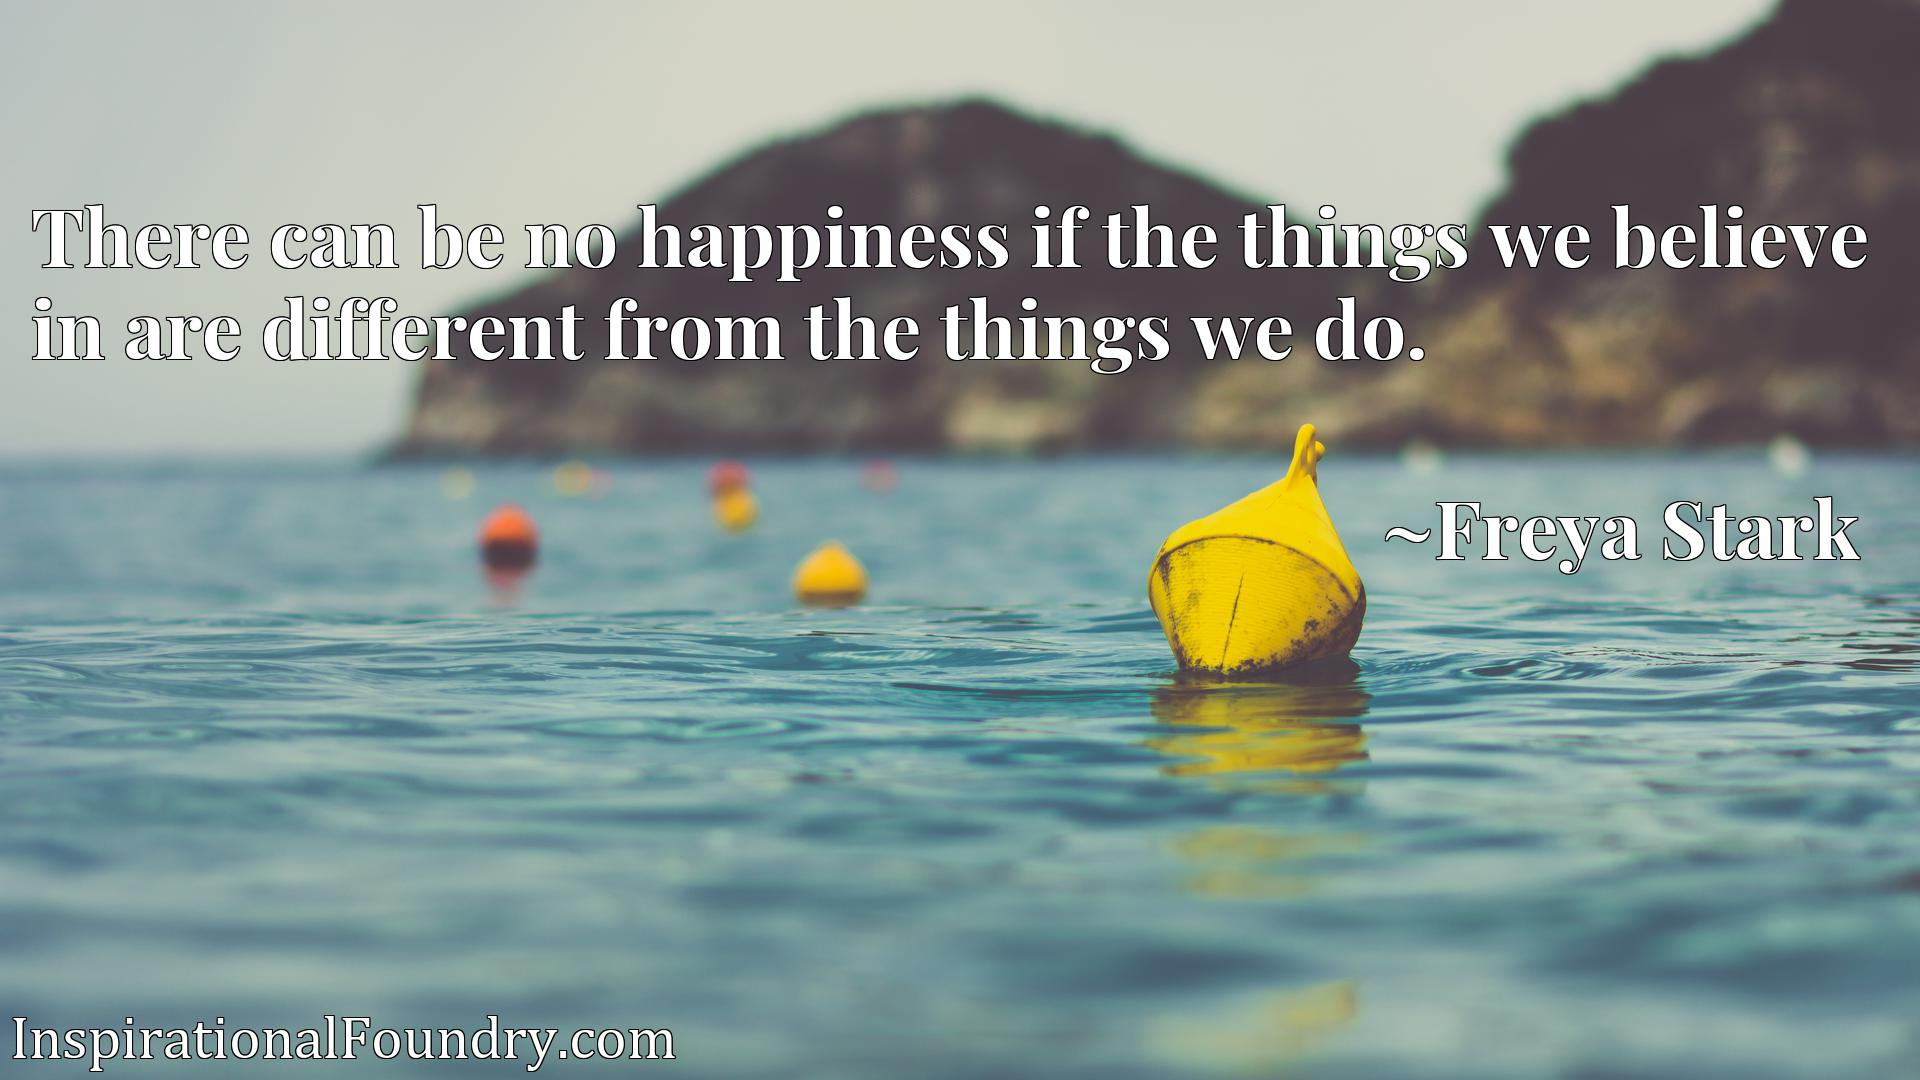 Quote Picture :There can be no happiness if the things we believe in are different from the things we do.